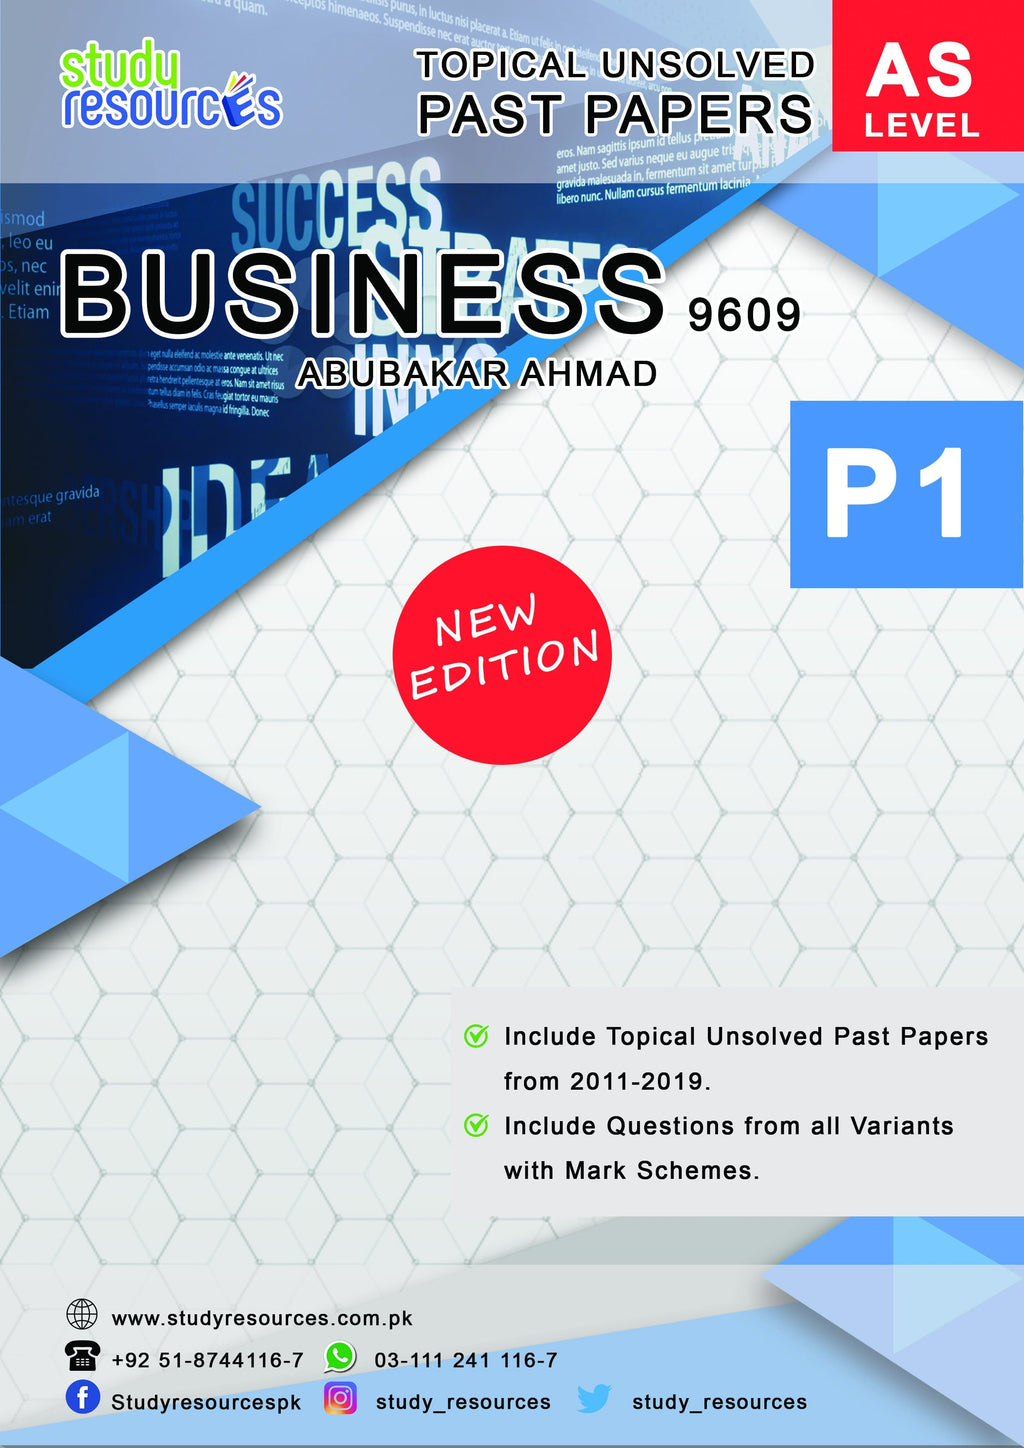 Cambridge AS-Level Business (9609) Topical Papers P-1 by Sir. Abubakar Ahmad